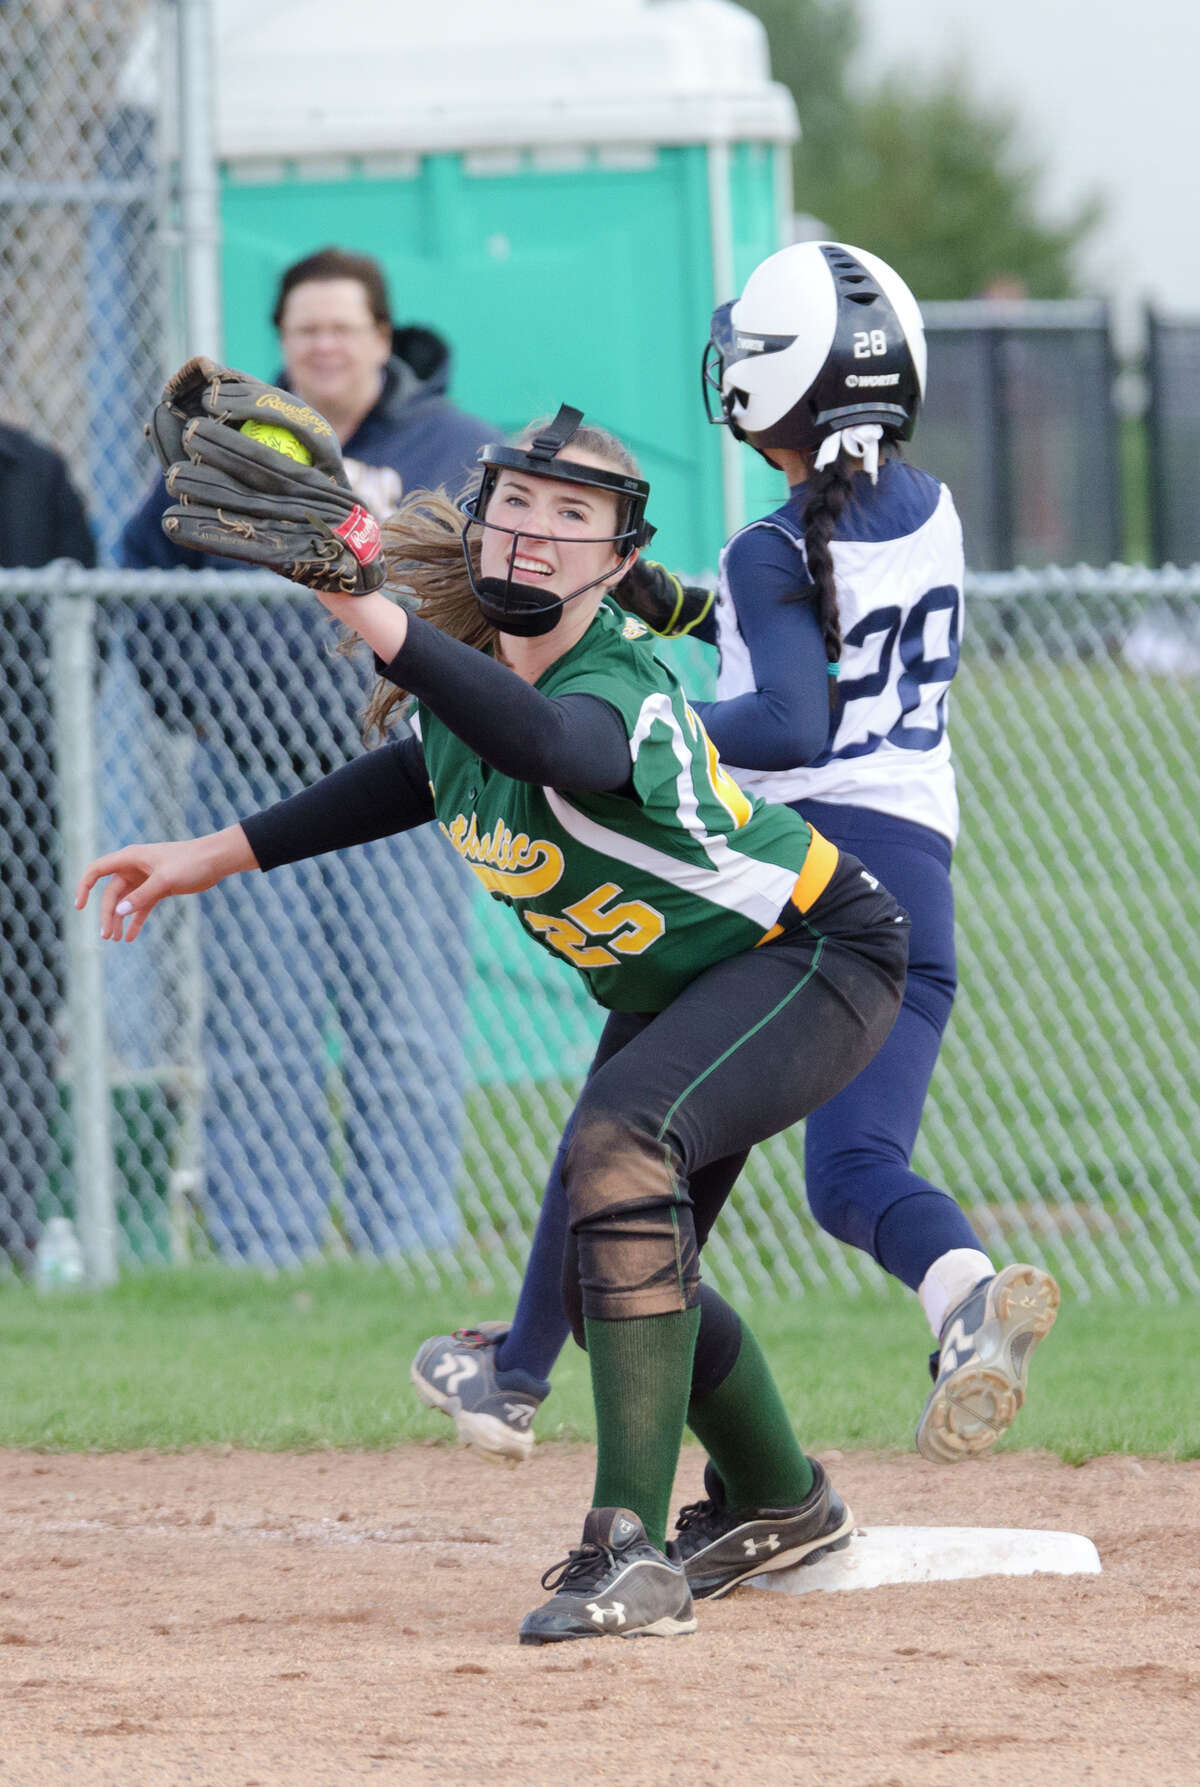 Trinity Catholic's Emily Ellis (25) makes an out as Staples' Chrstine McCarthy (28) runs to first base during the softball game at Wakeman Field in Westport on Wednesday, Apr. 23, 2014.